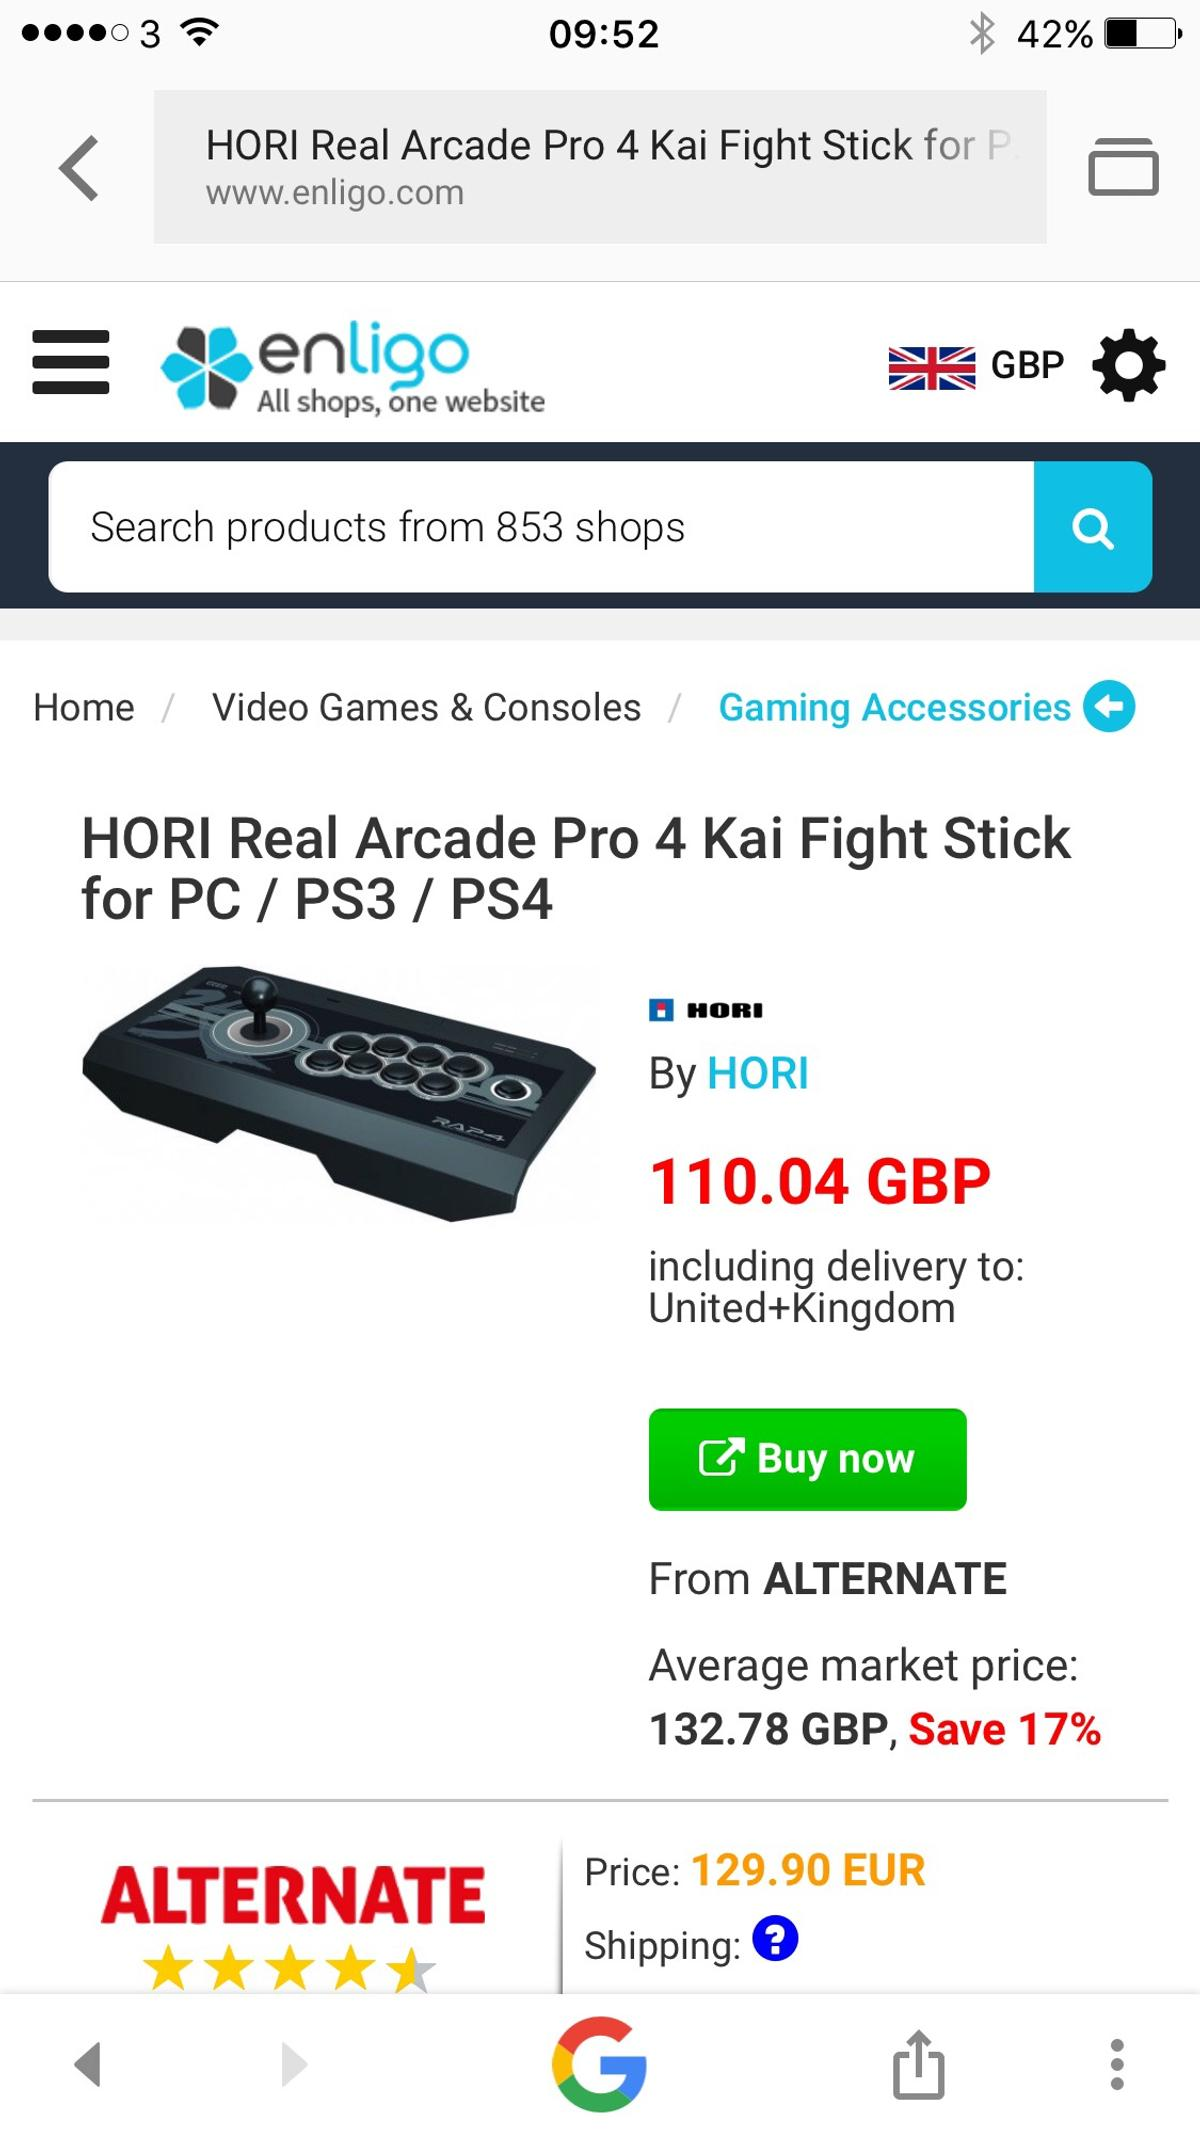 HORI RAP4 FIGHT STICK in IG10 Loughton for £70 00 for sale